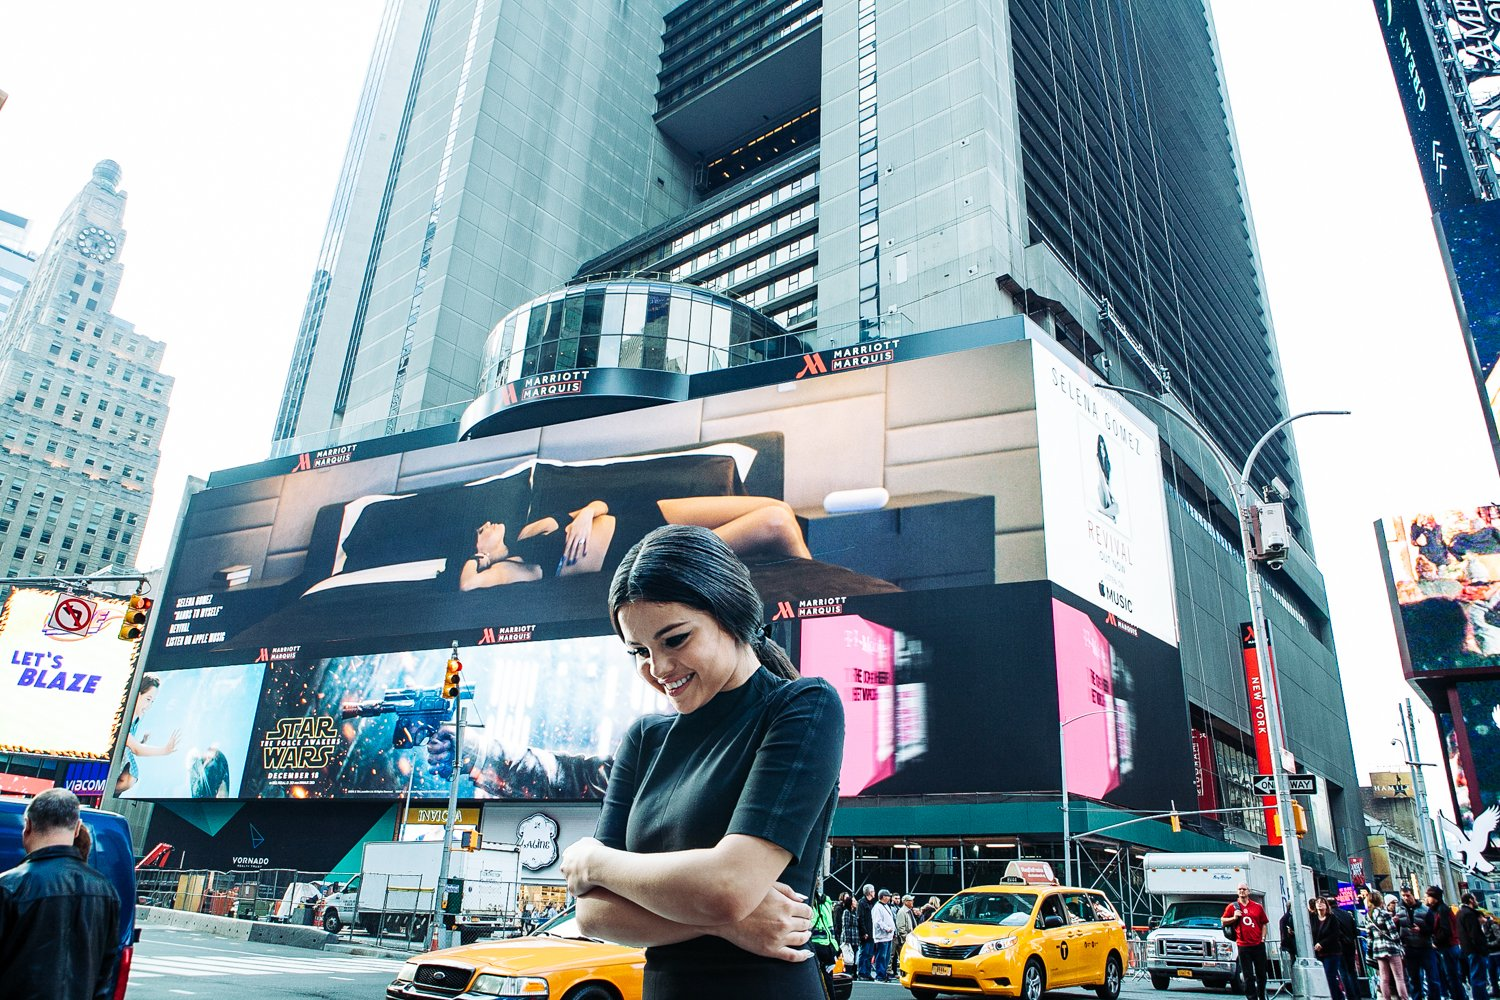 Casually seeing my face on the giant @beatsbydre billboard in Times Square… ahhhh!! #HandsToMyself vid coming soon! https://t.co/t2xkGhD6mV